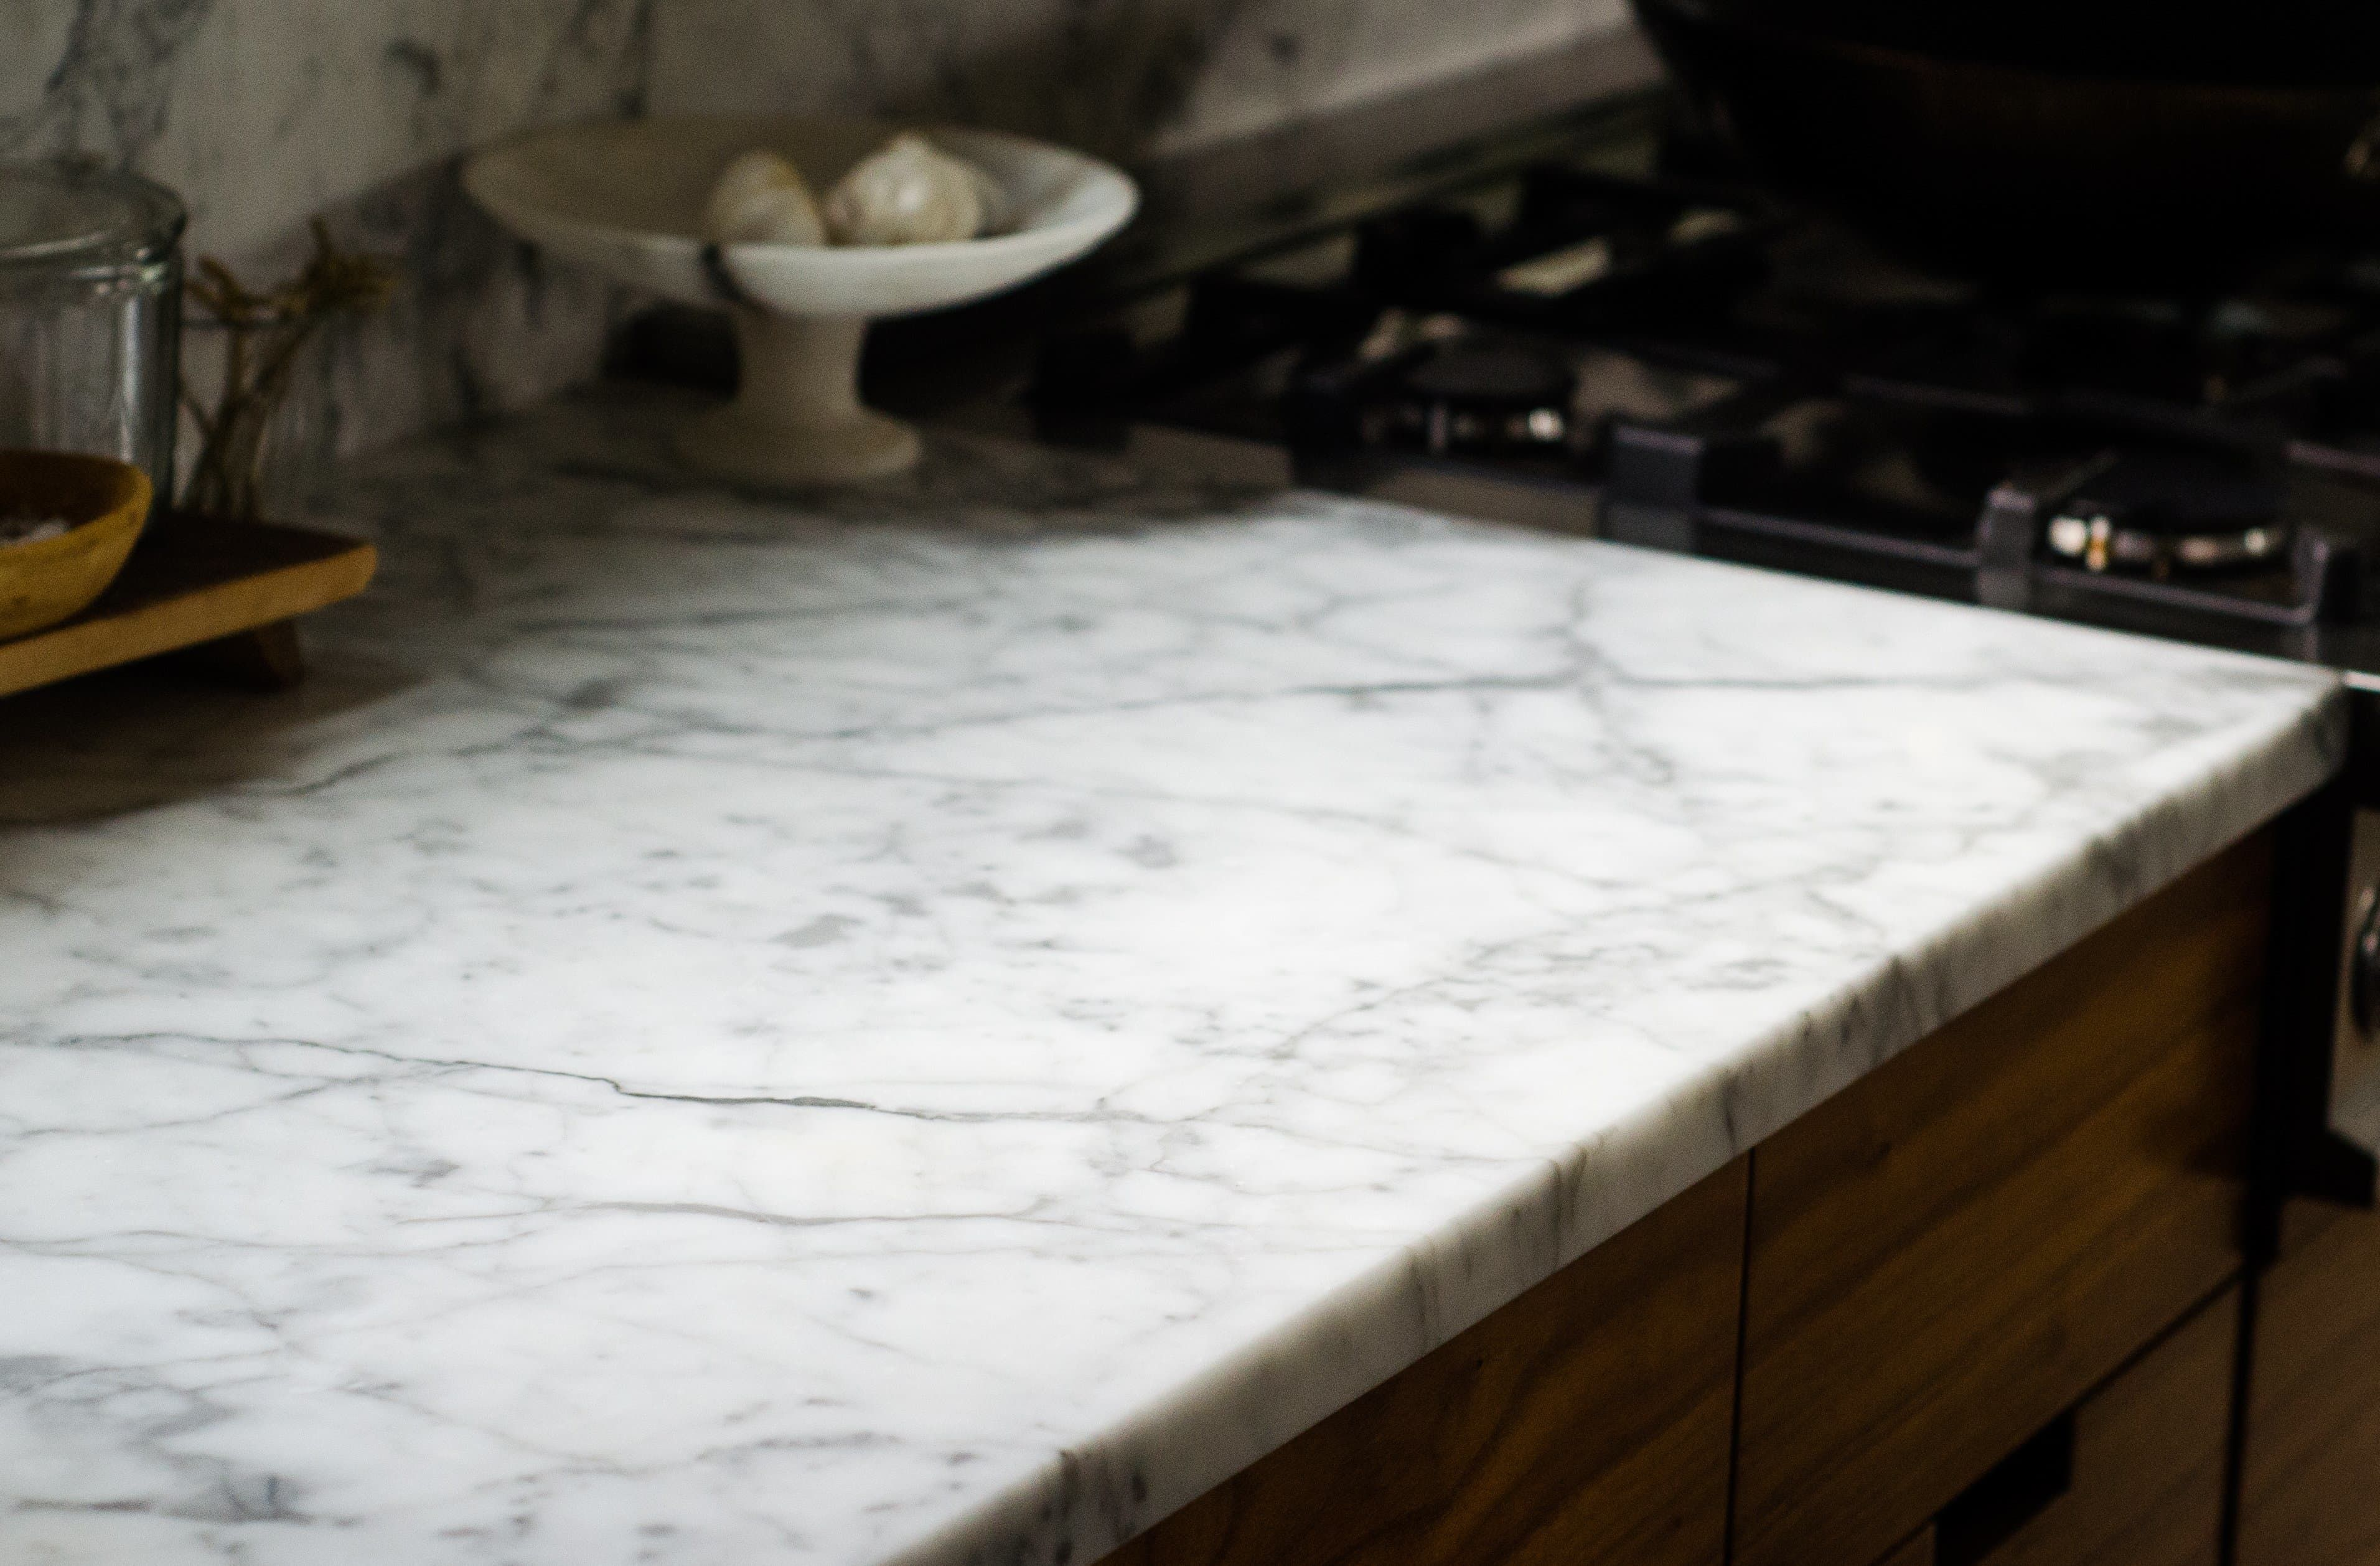 Here S What An Etch On A Marble Countertop Actually Looks Like